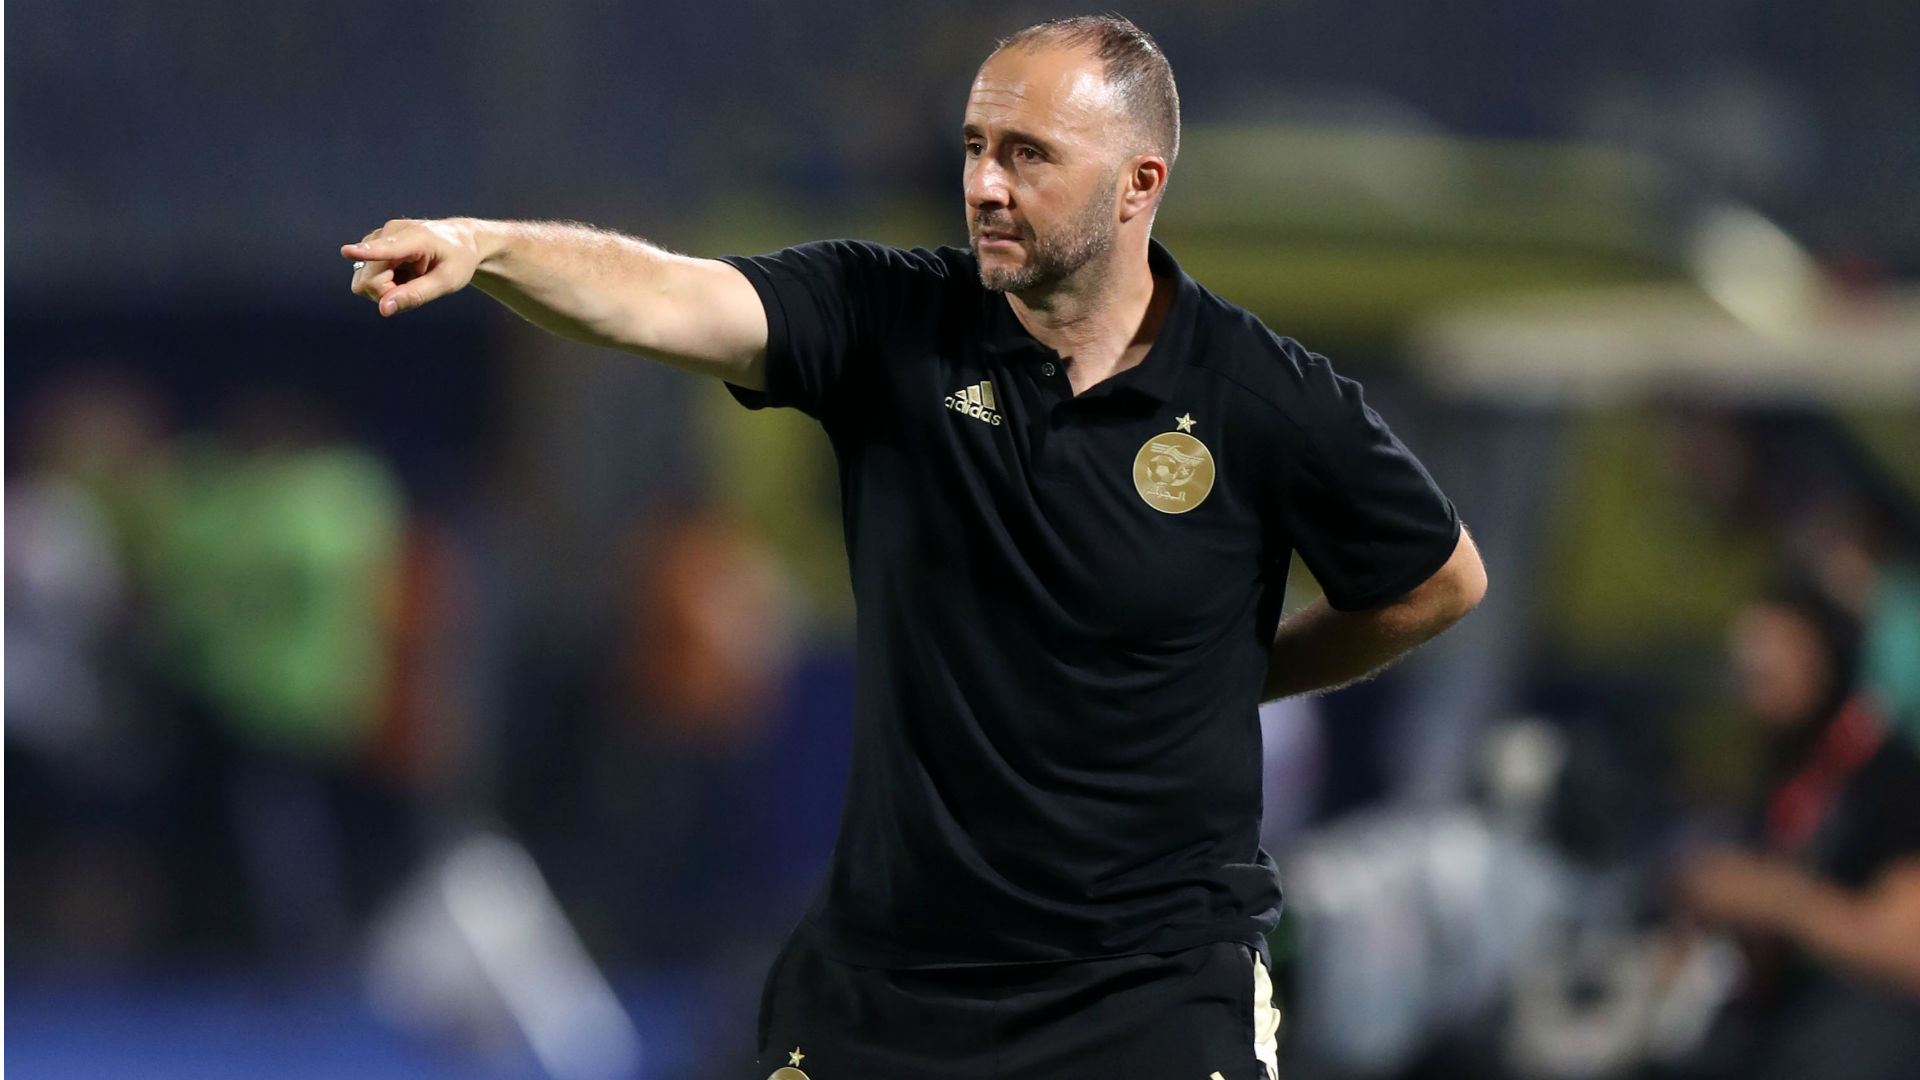 Afcon 2019: Djamel Belmadi lauds Algeria's attitude and mental strength against Nigeria